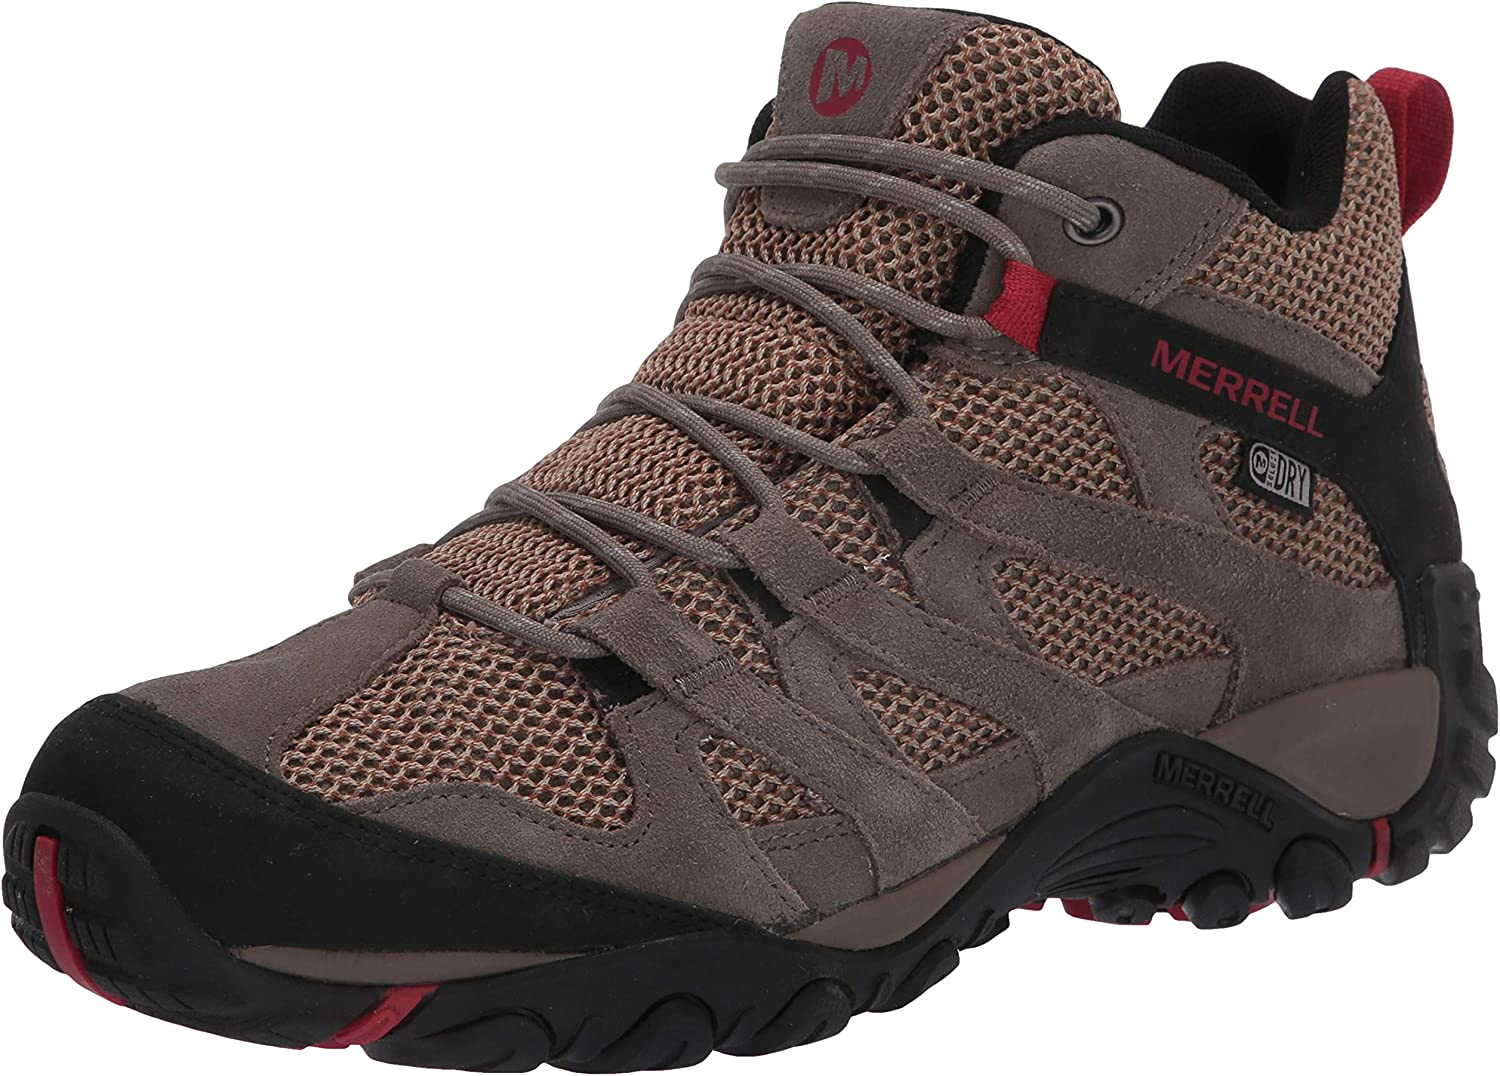 Merrell Men s Alverstone Mid Waterproof Hiking Boot